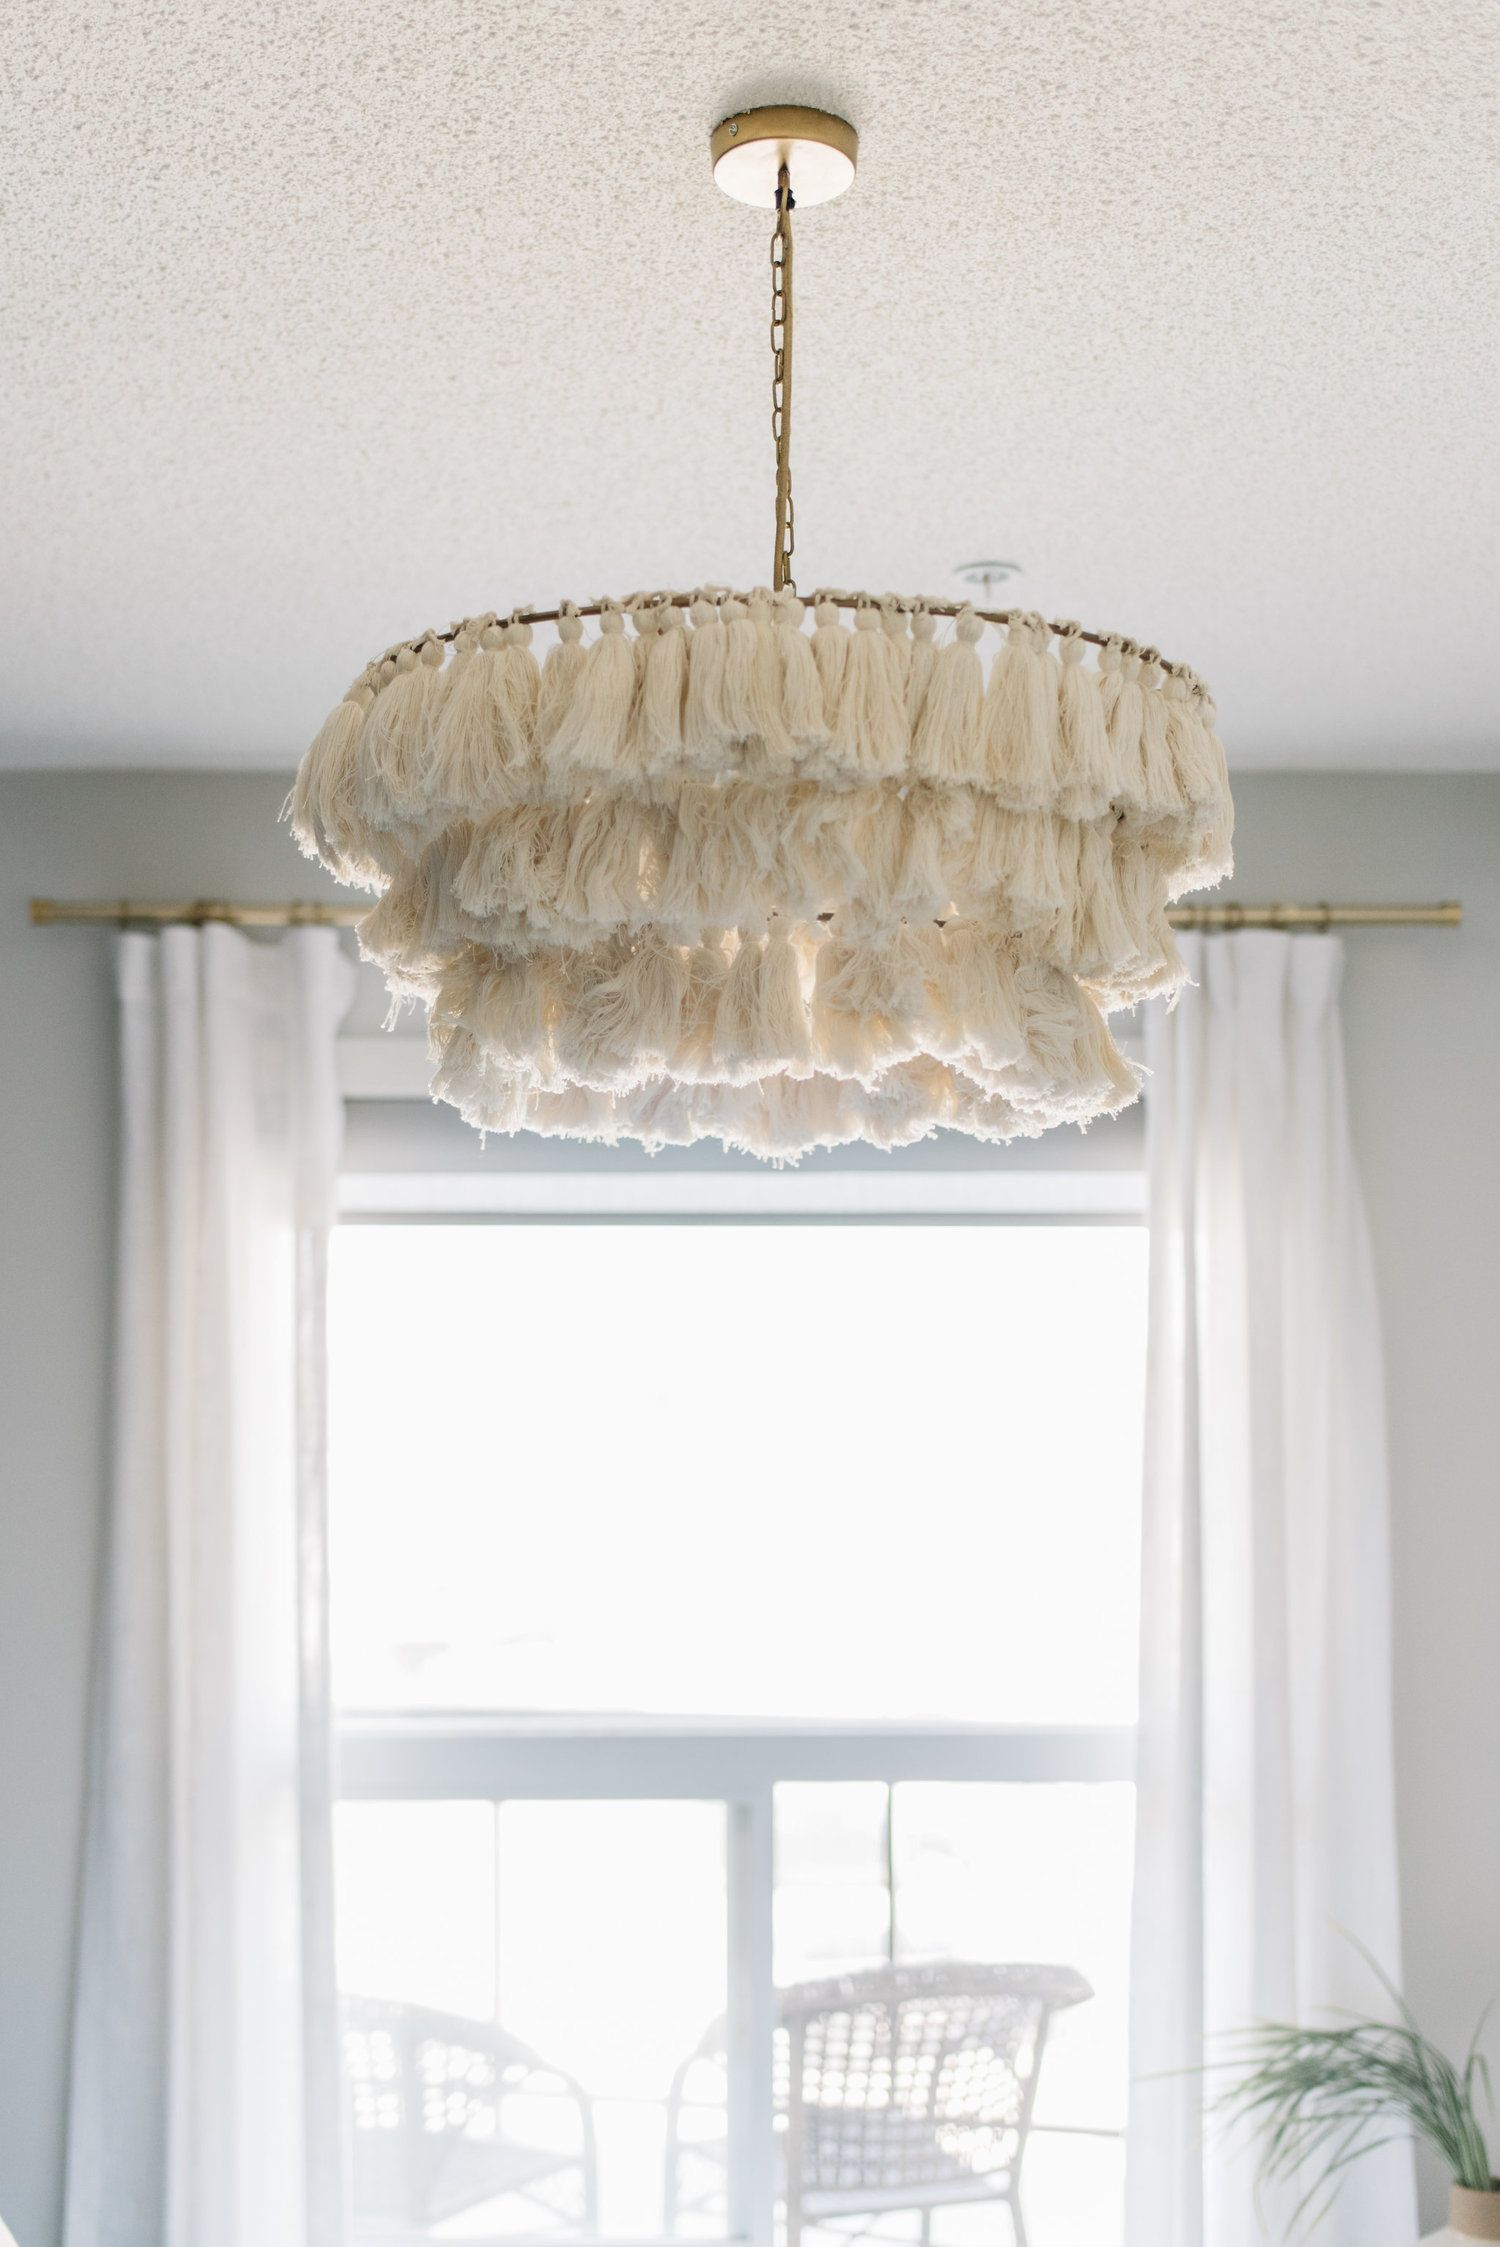 Design Crush Boho Statement Lights Bedroom Light Fixtures